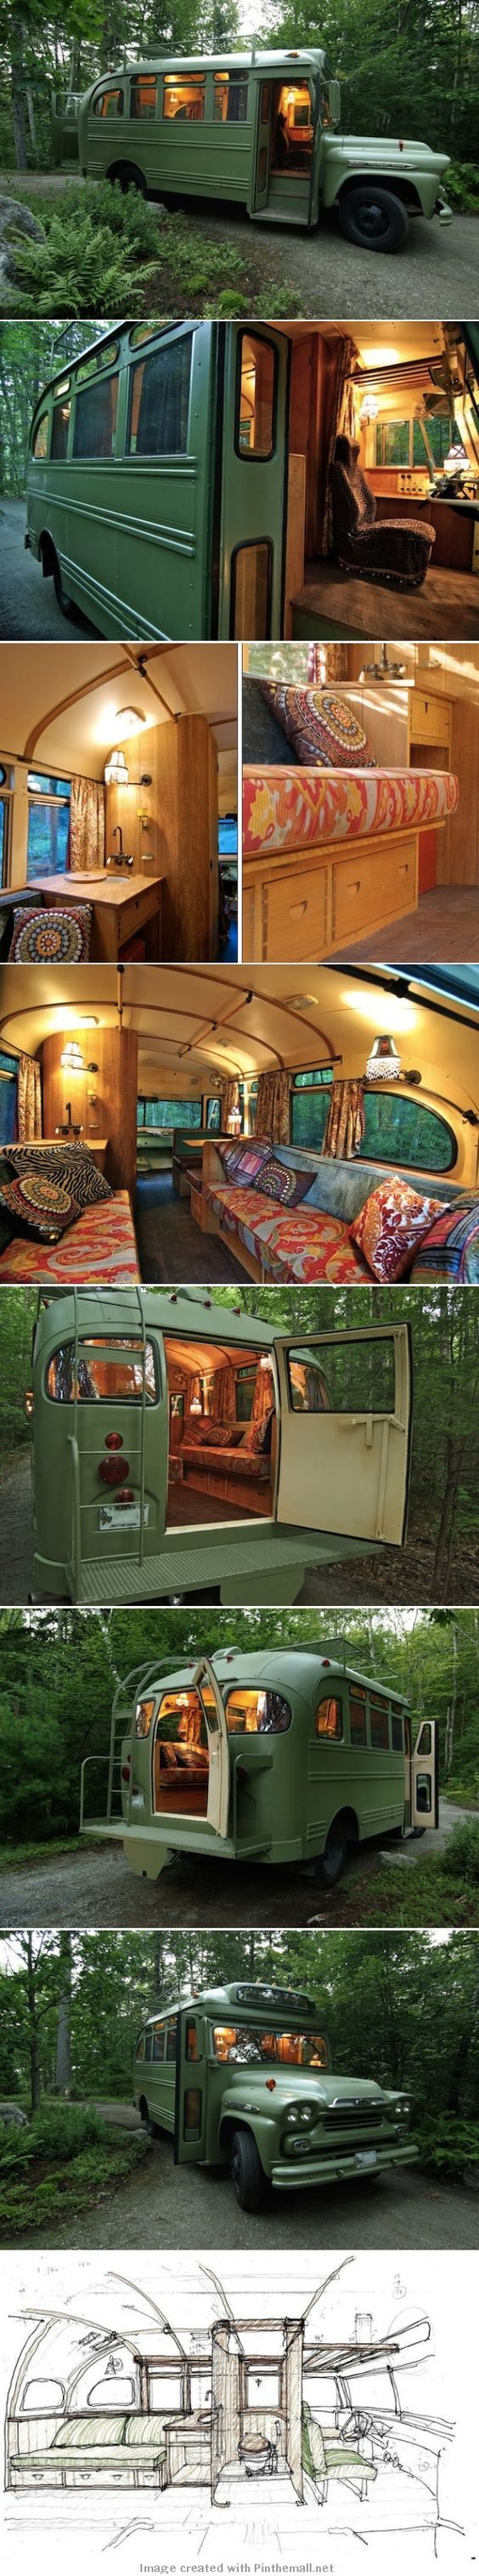 1959 Chevy bus to camper conversion |||| not a fan of the interior fabrics, but.........mine!